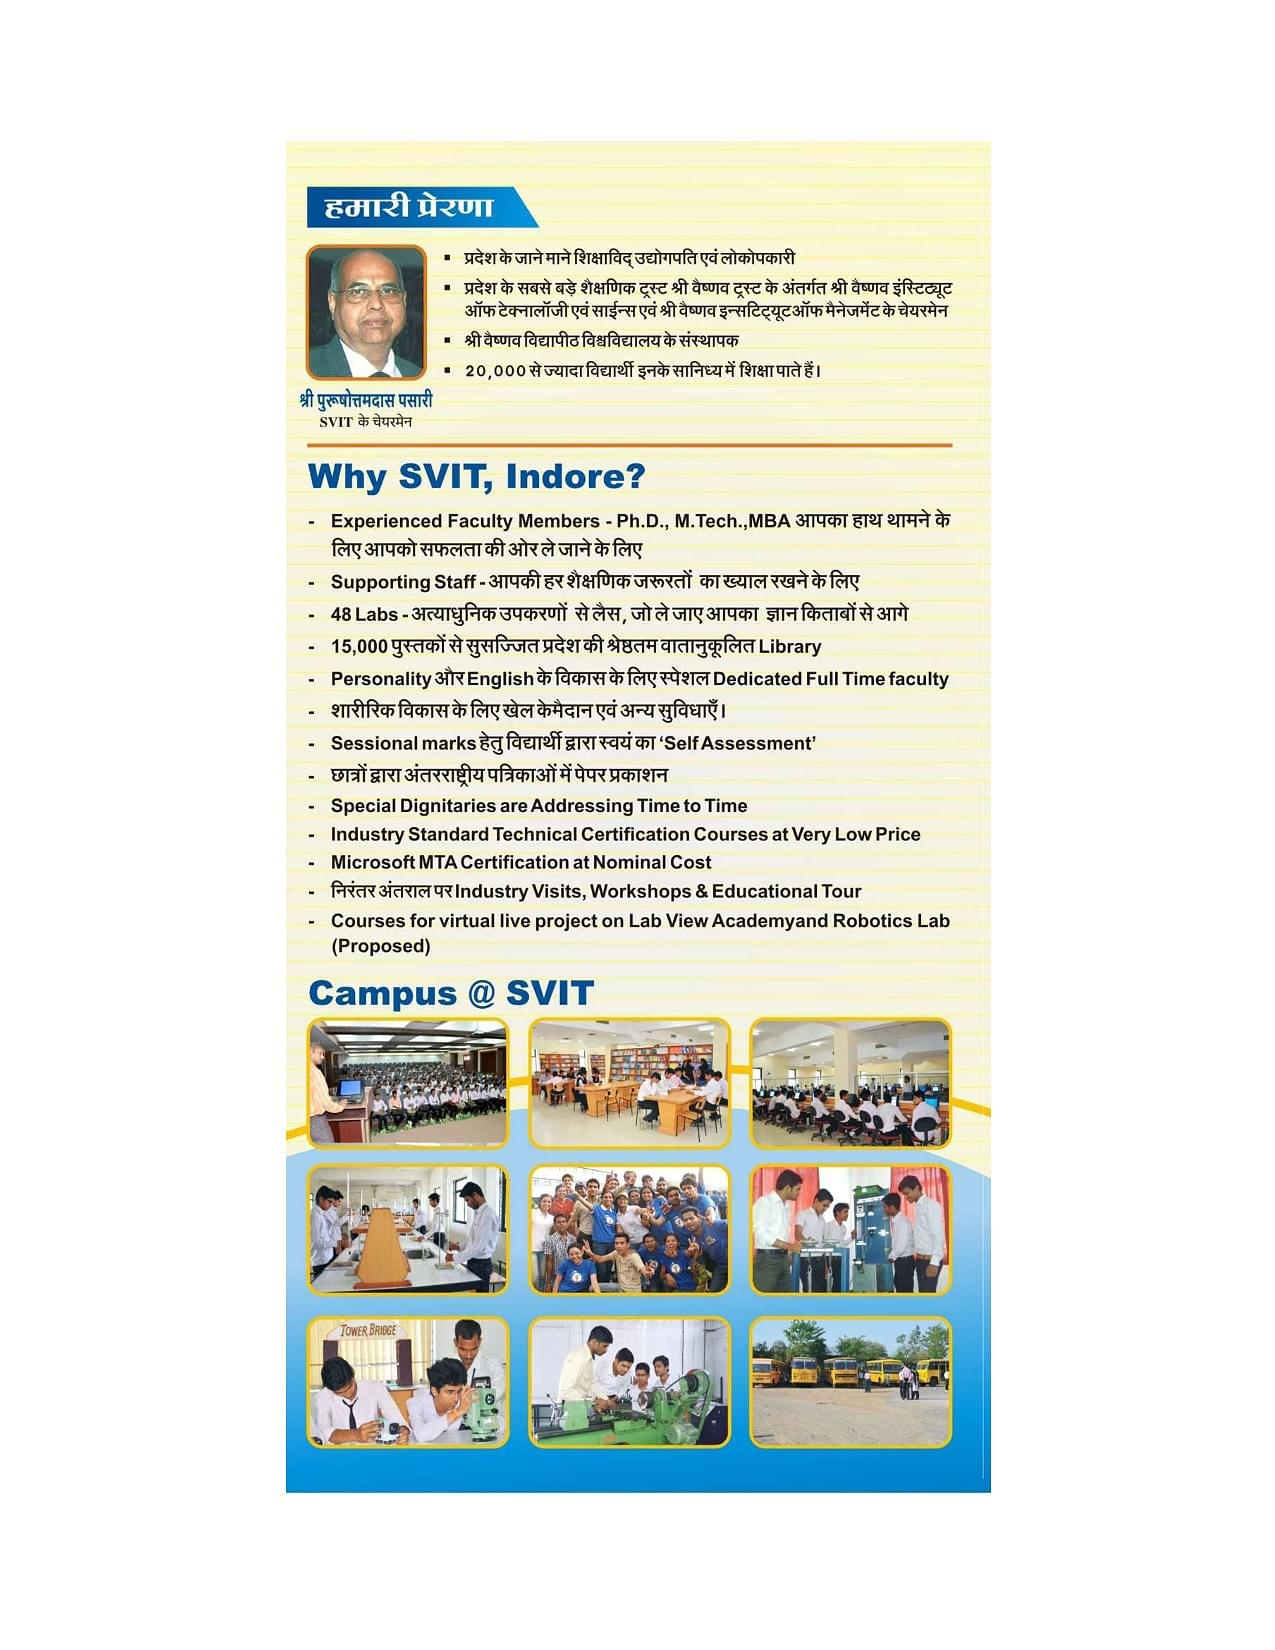 Shri venkteshwar institute of technology svit indore 2017brochure 1betcityfo Gallery